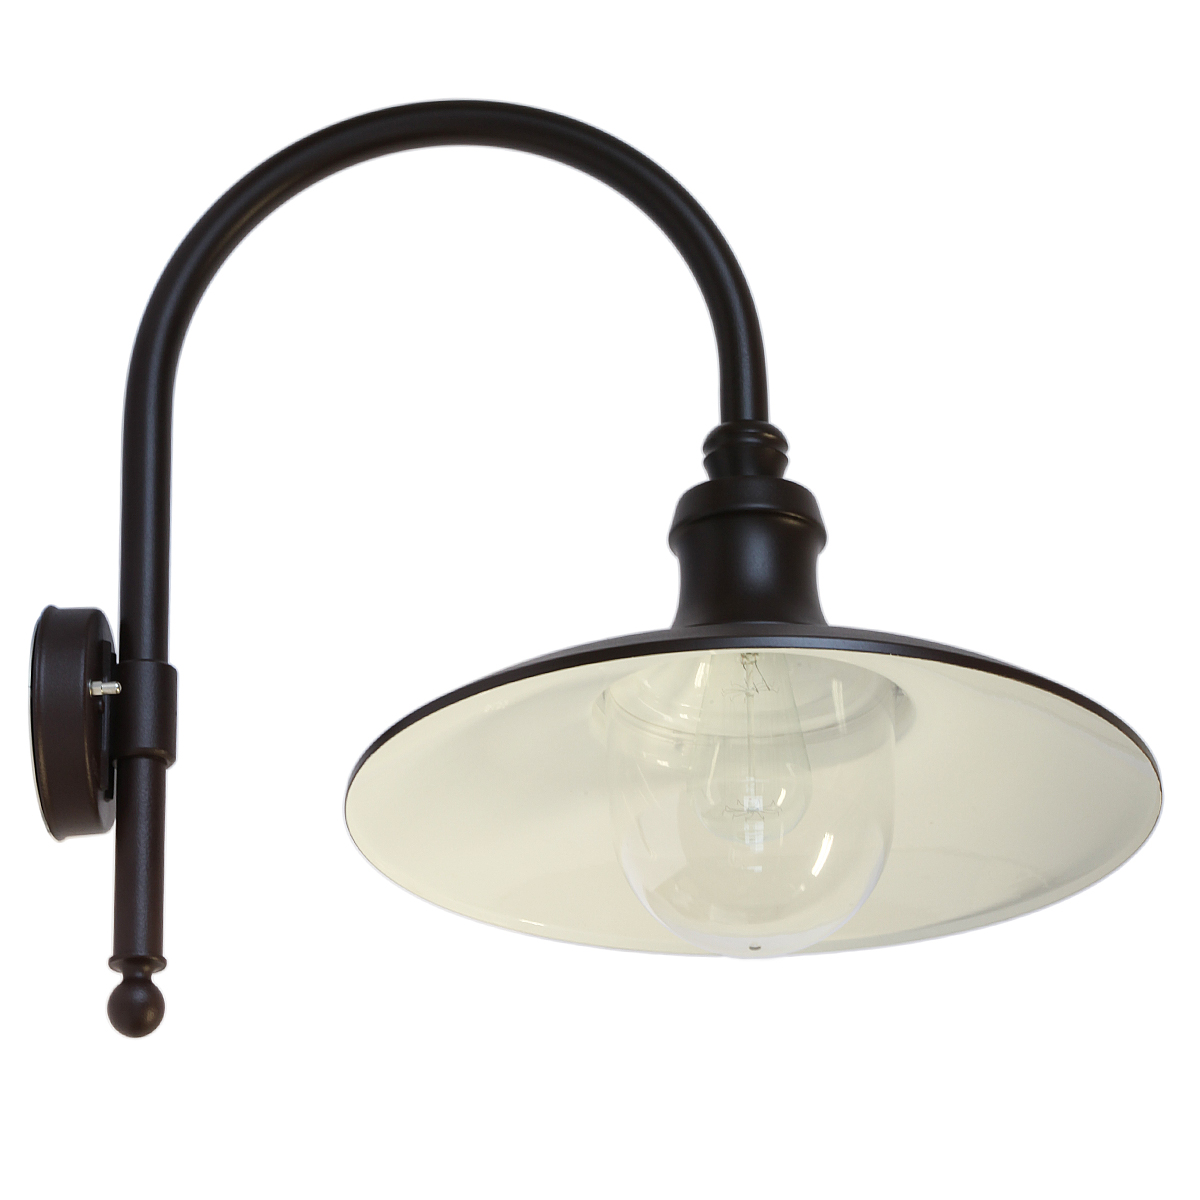 Italian Factory-Style Wall Lamp for Outdoors with Makrolon Glass - Terra Lumi